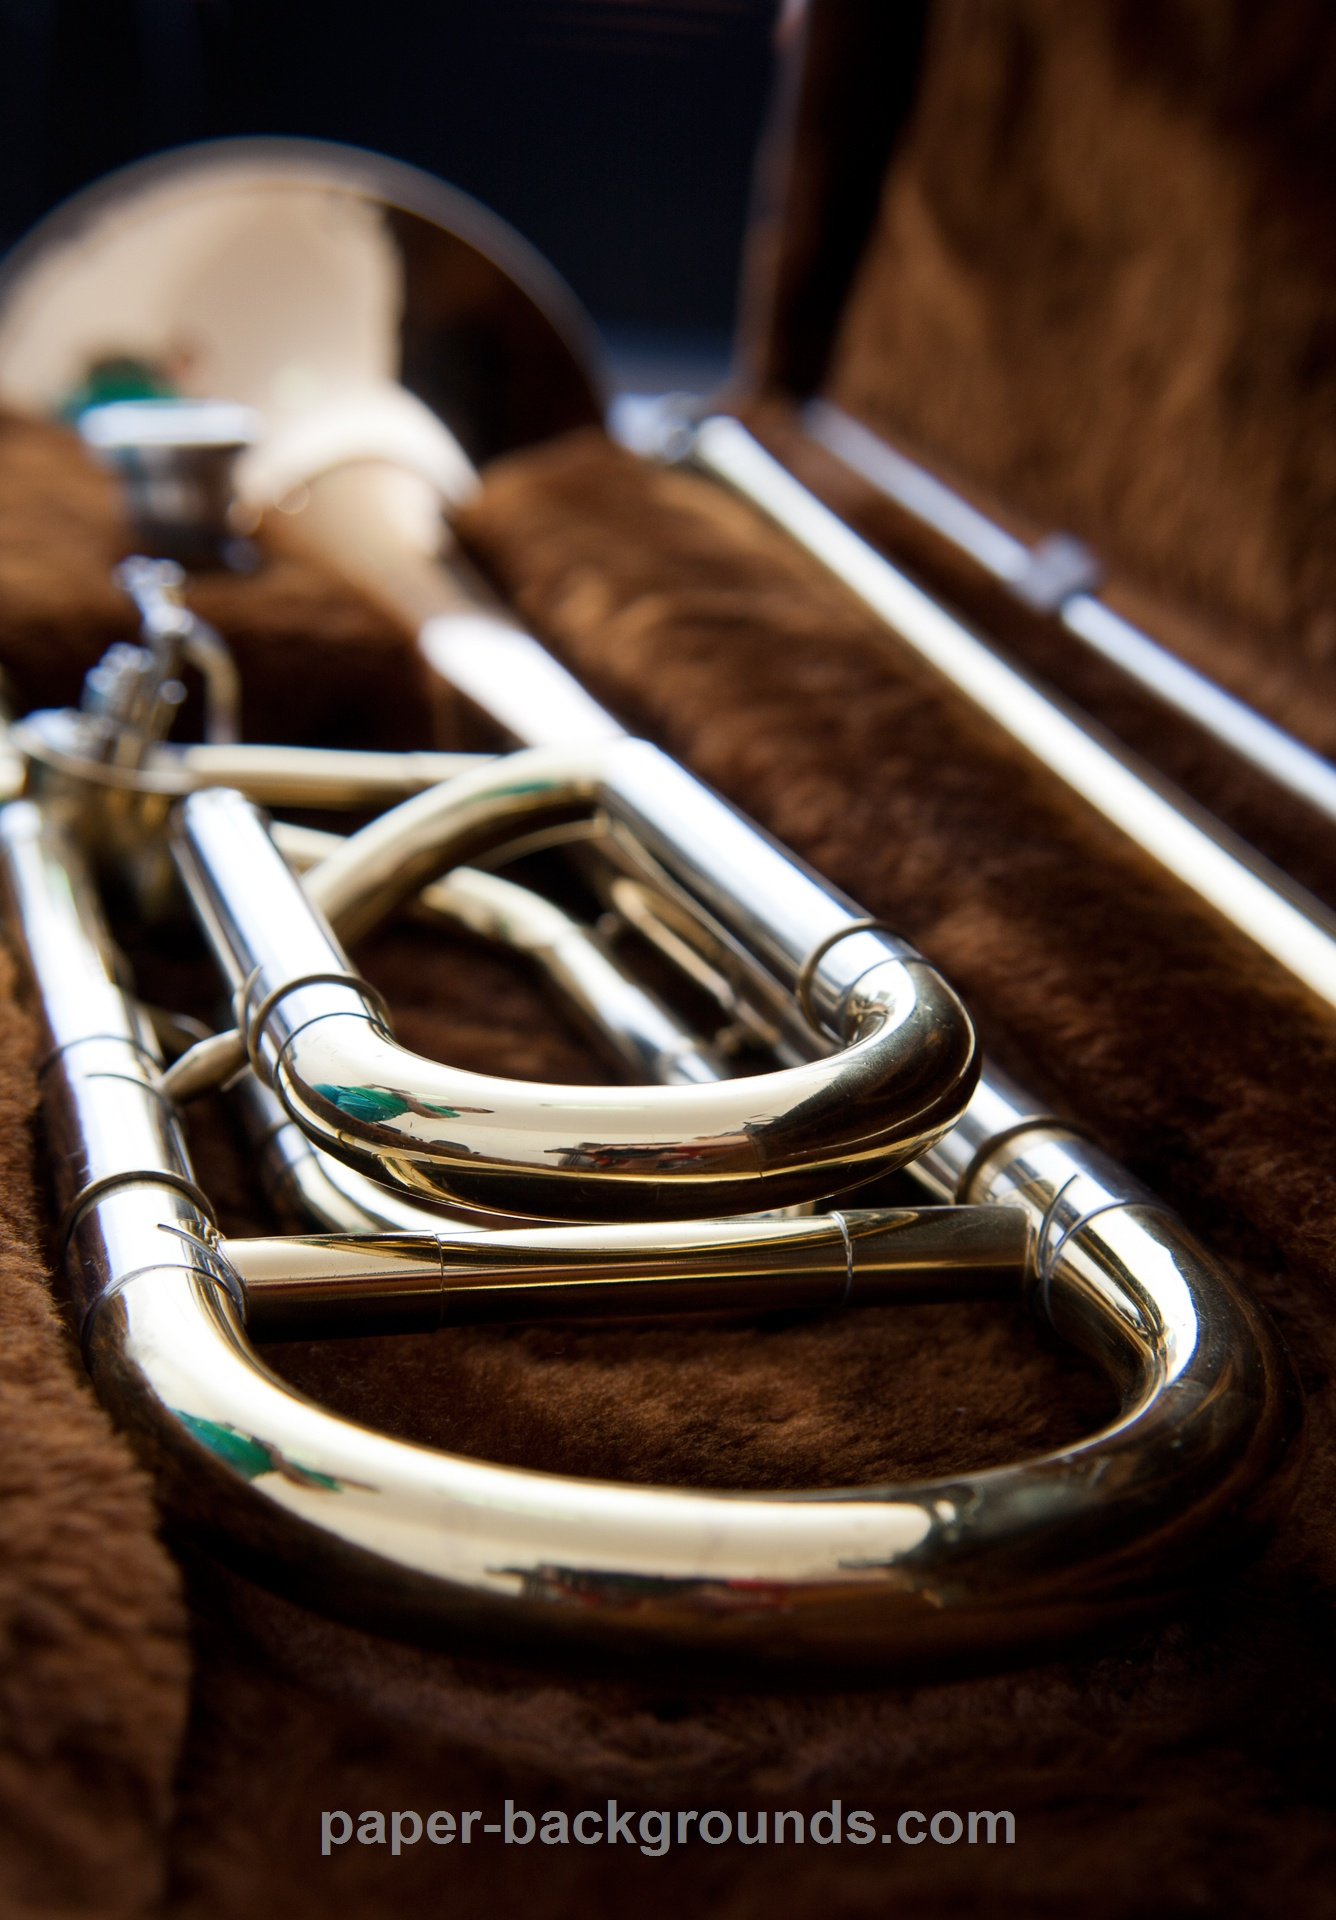 Musical Instrument Close-up Macro HD